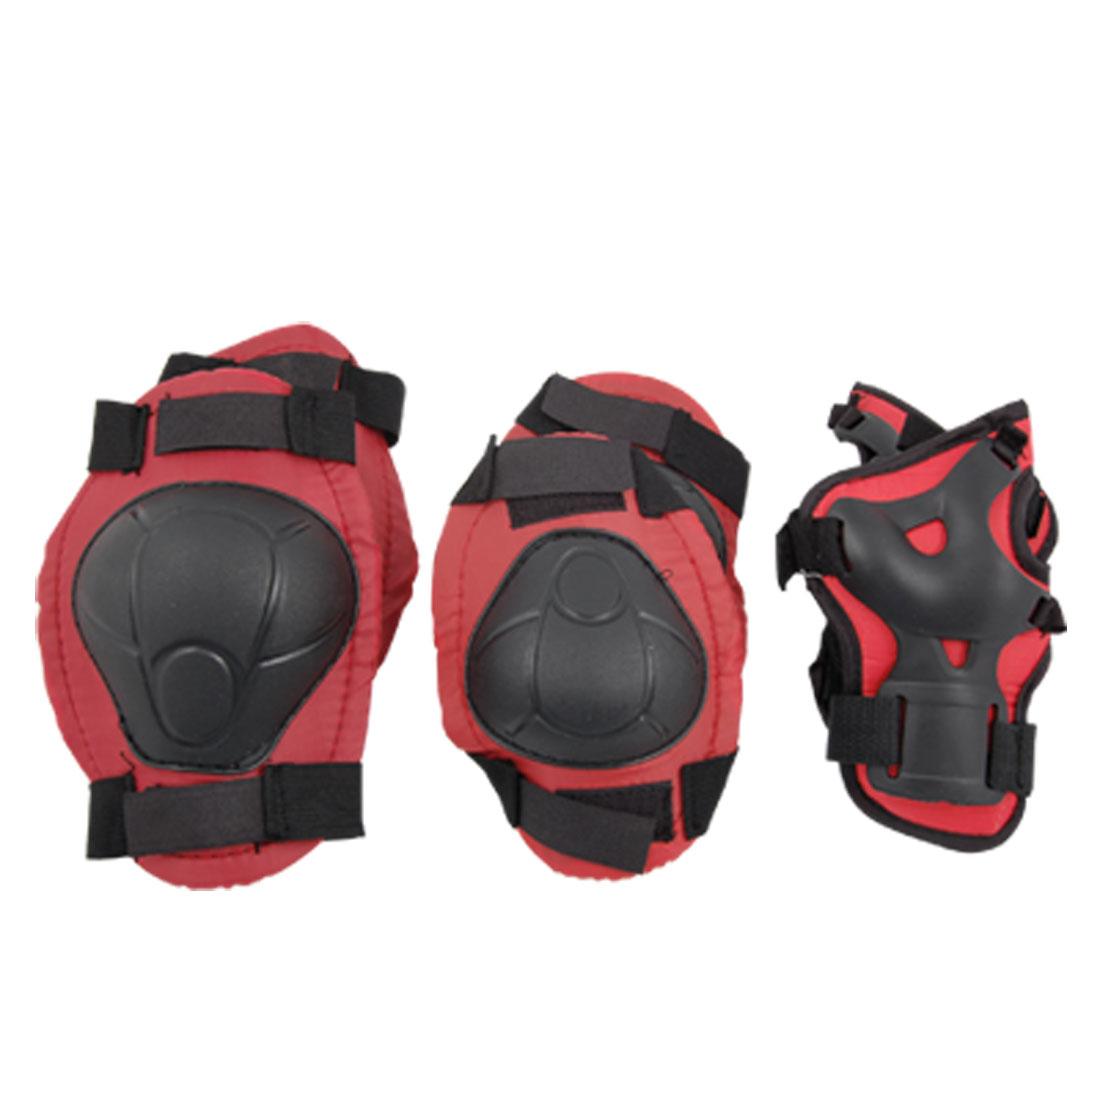 Red Black Skate Sports Knee Elbow Wrist Pad Support for Children